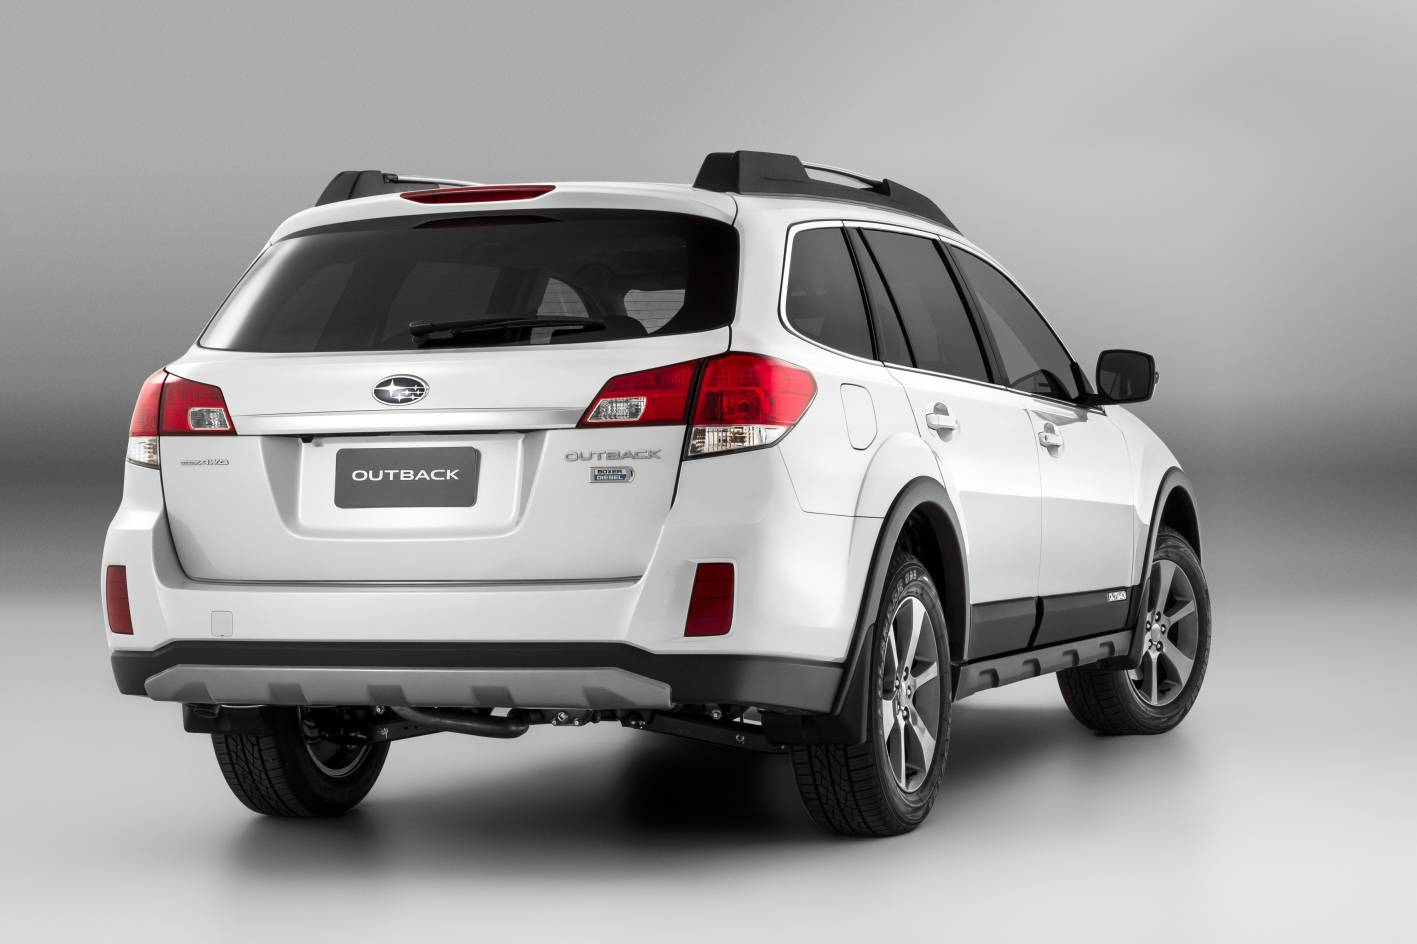 Subaru Cars News Subaru Updates 2014 Outback